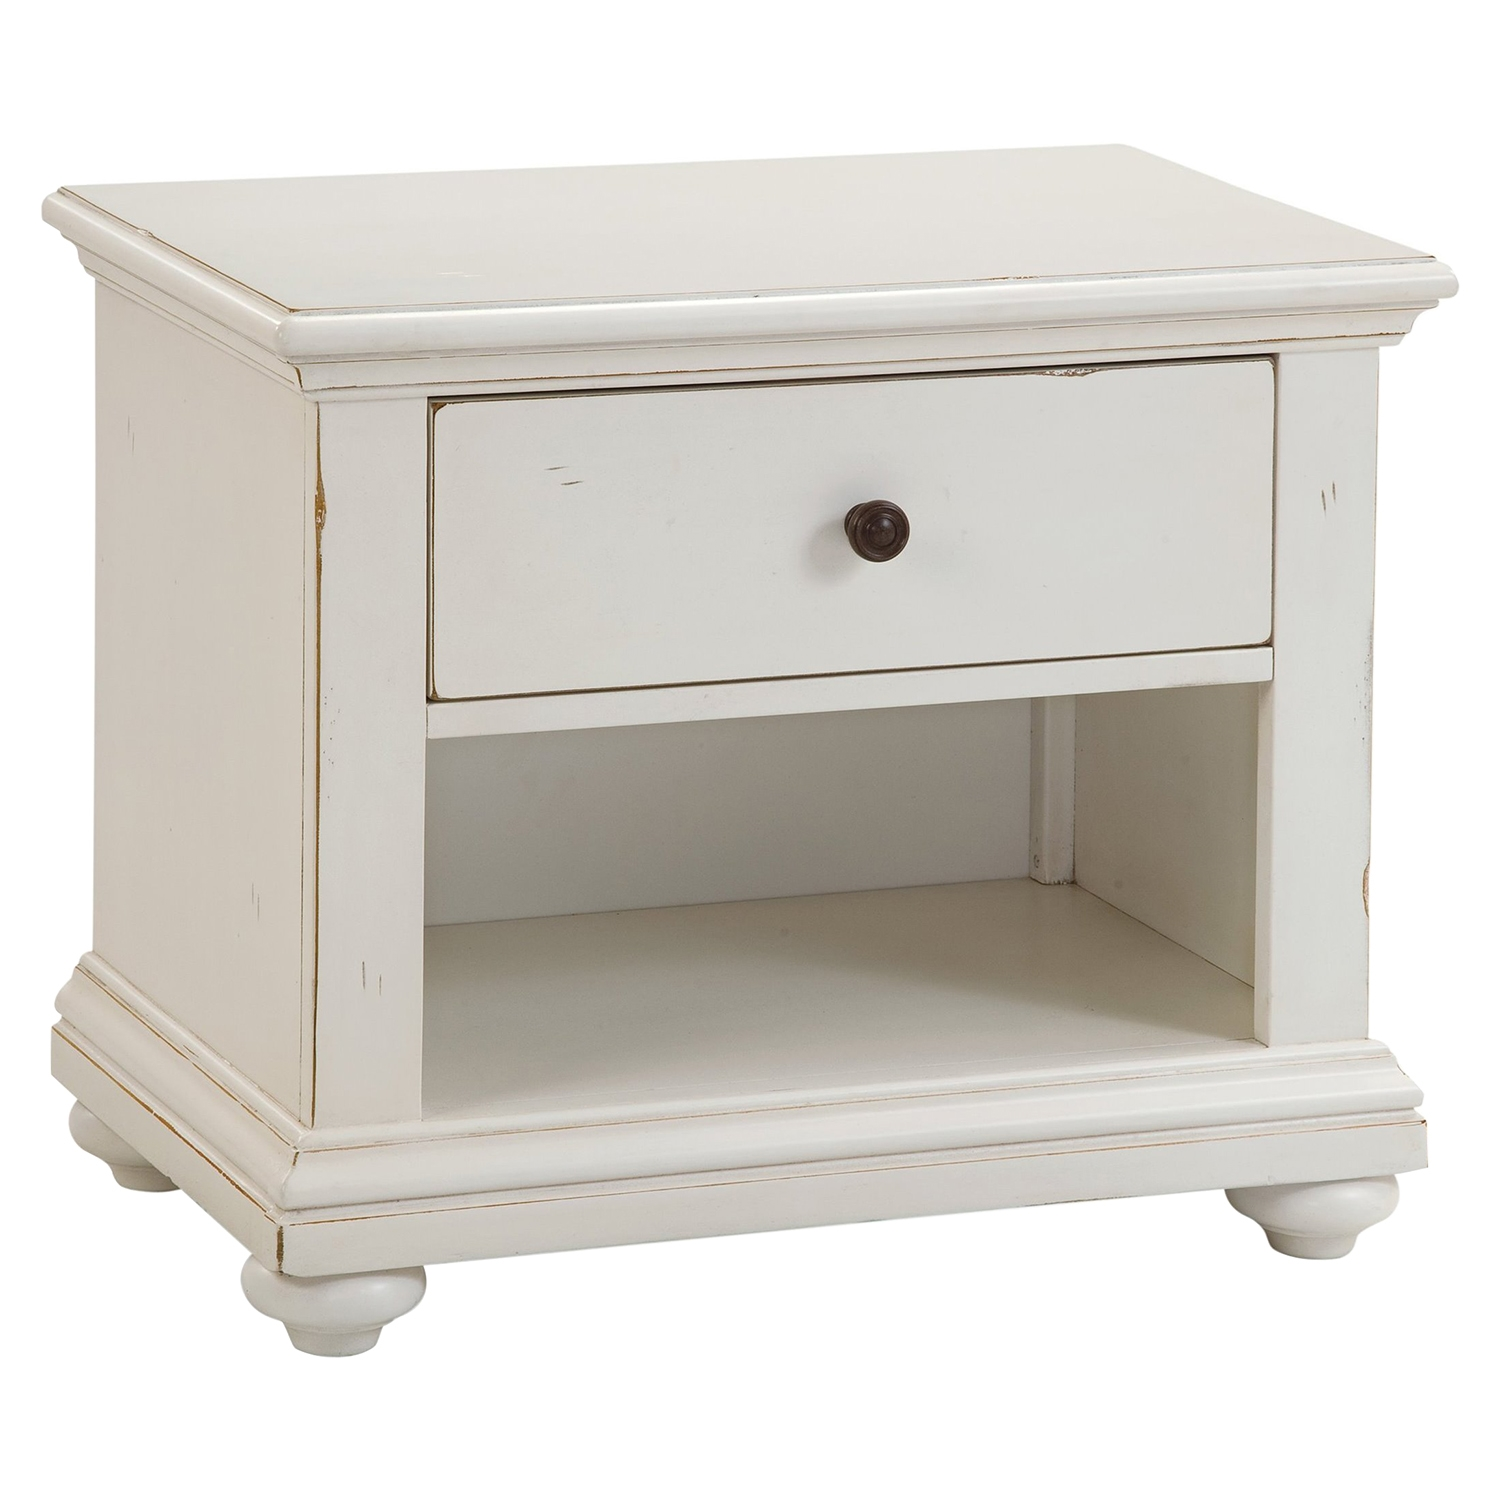 Pathways 2-Drawer Nightstand - Antique White - AW-5110-410